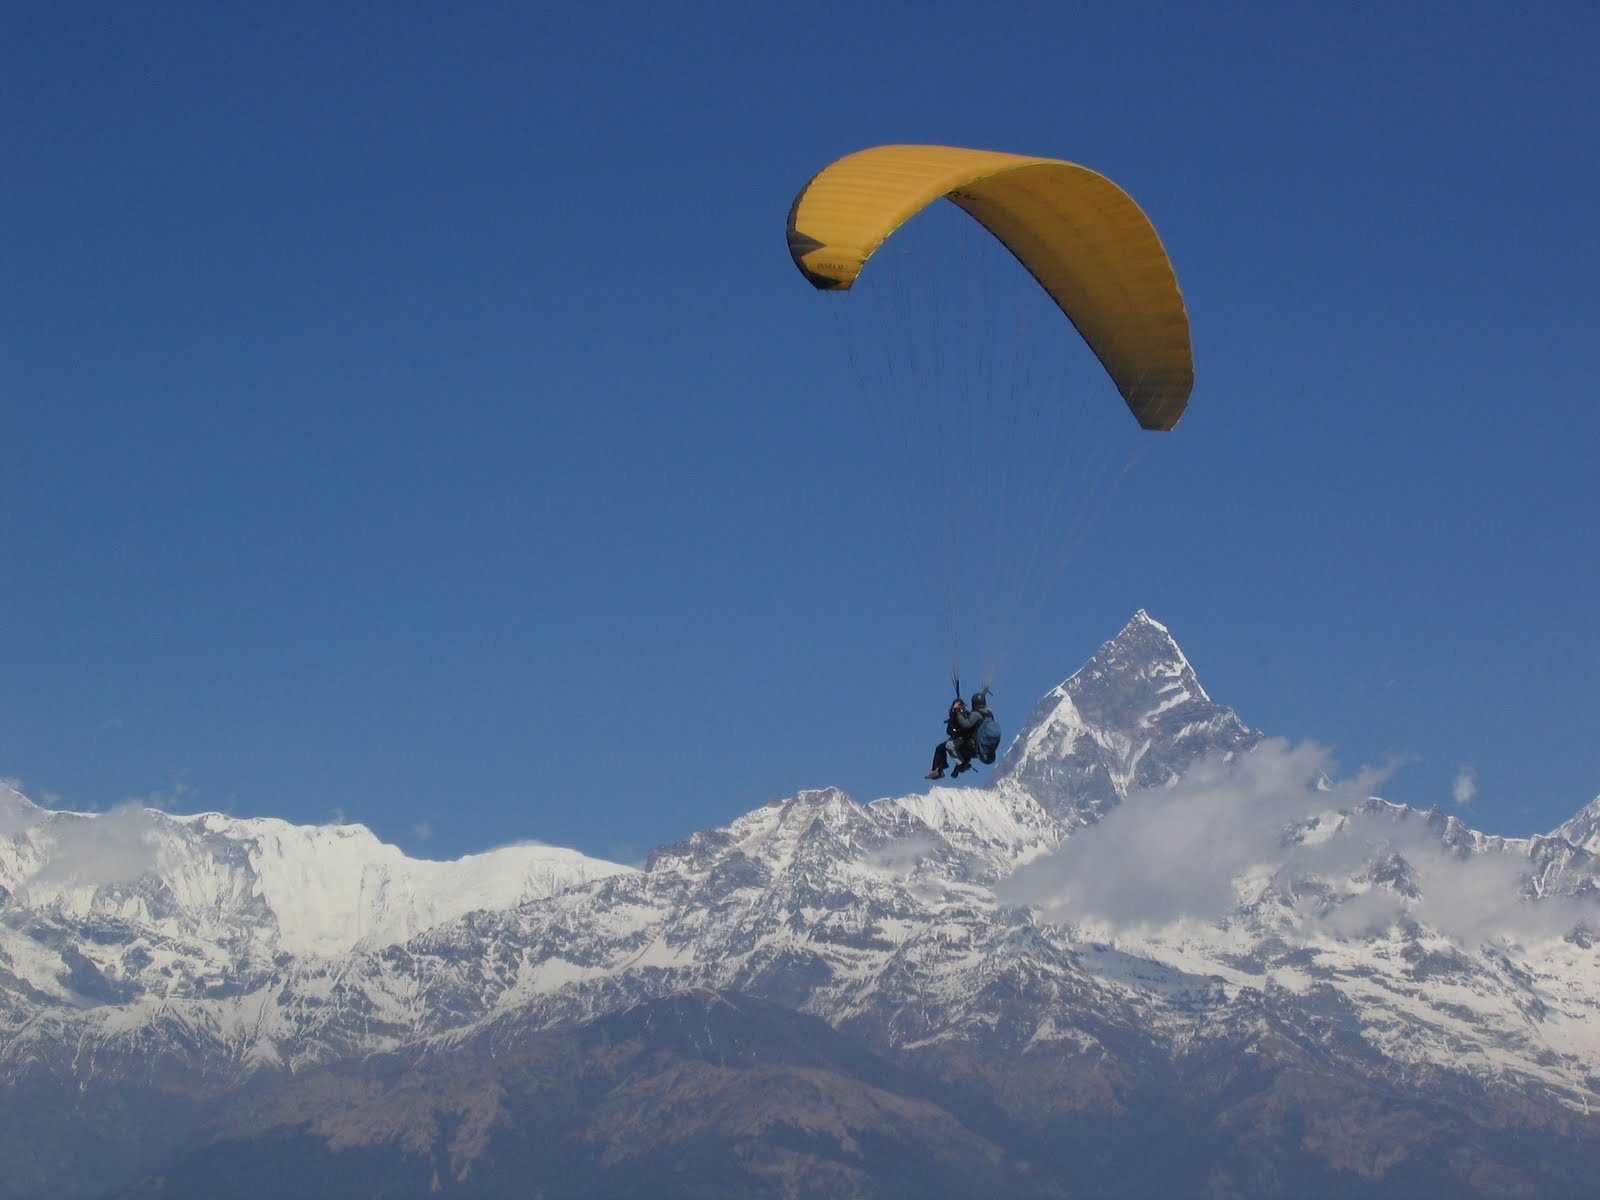 3d Wallpapers For Nokia E63 Cool Images Paragliding In Nepal